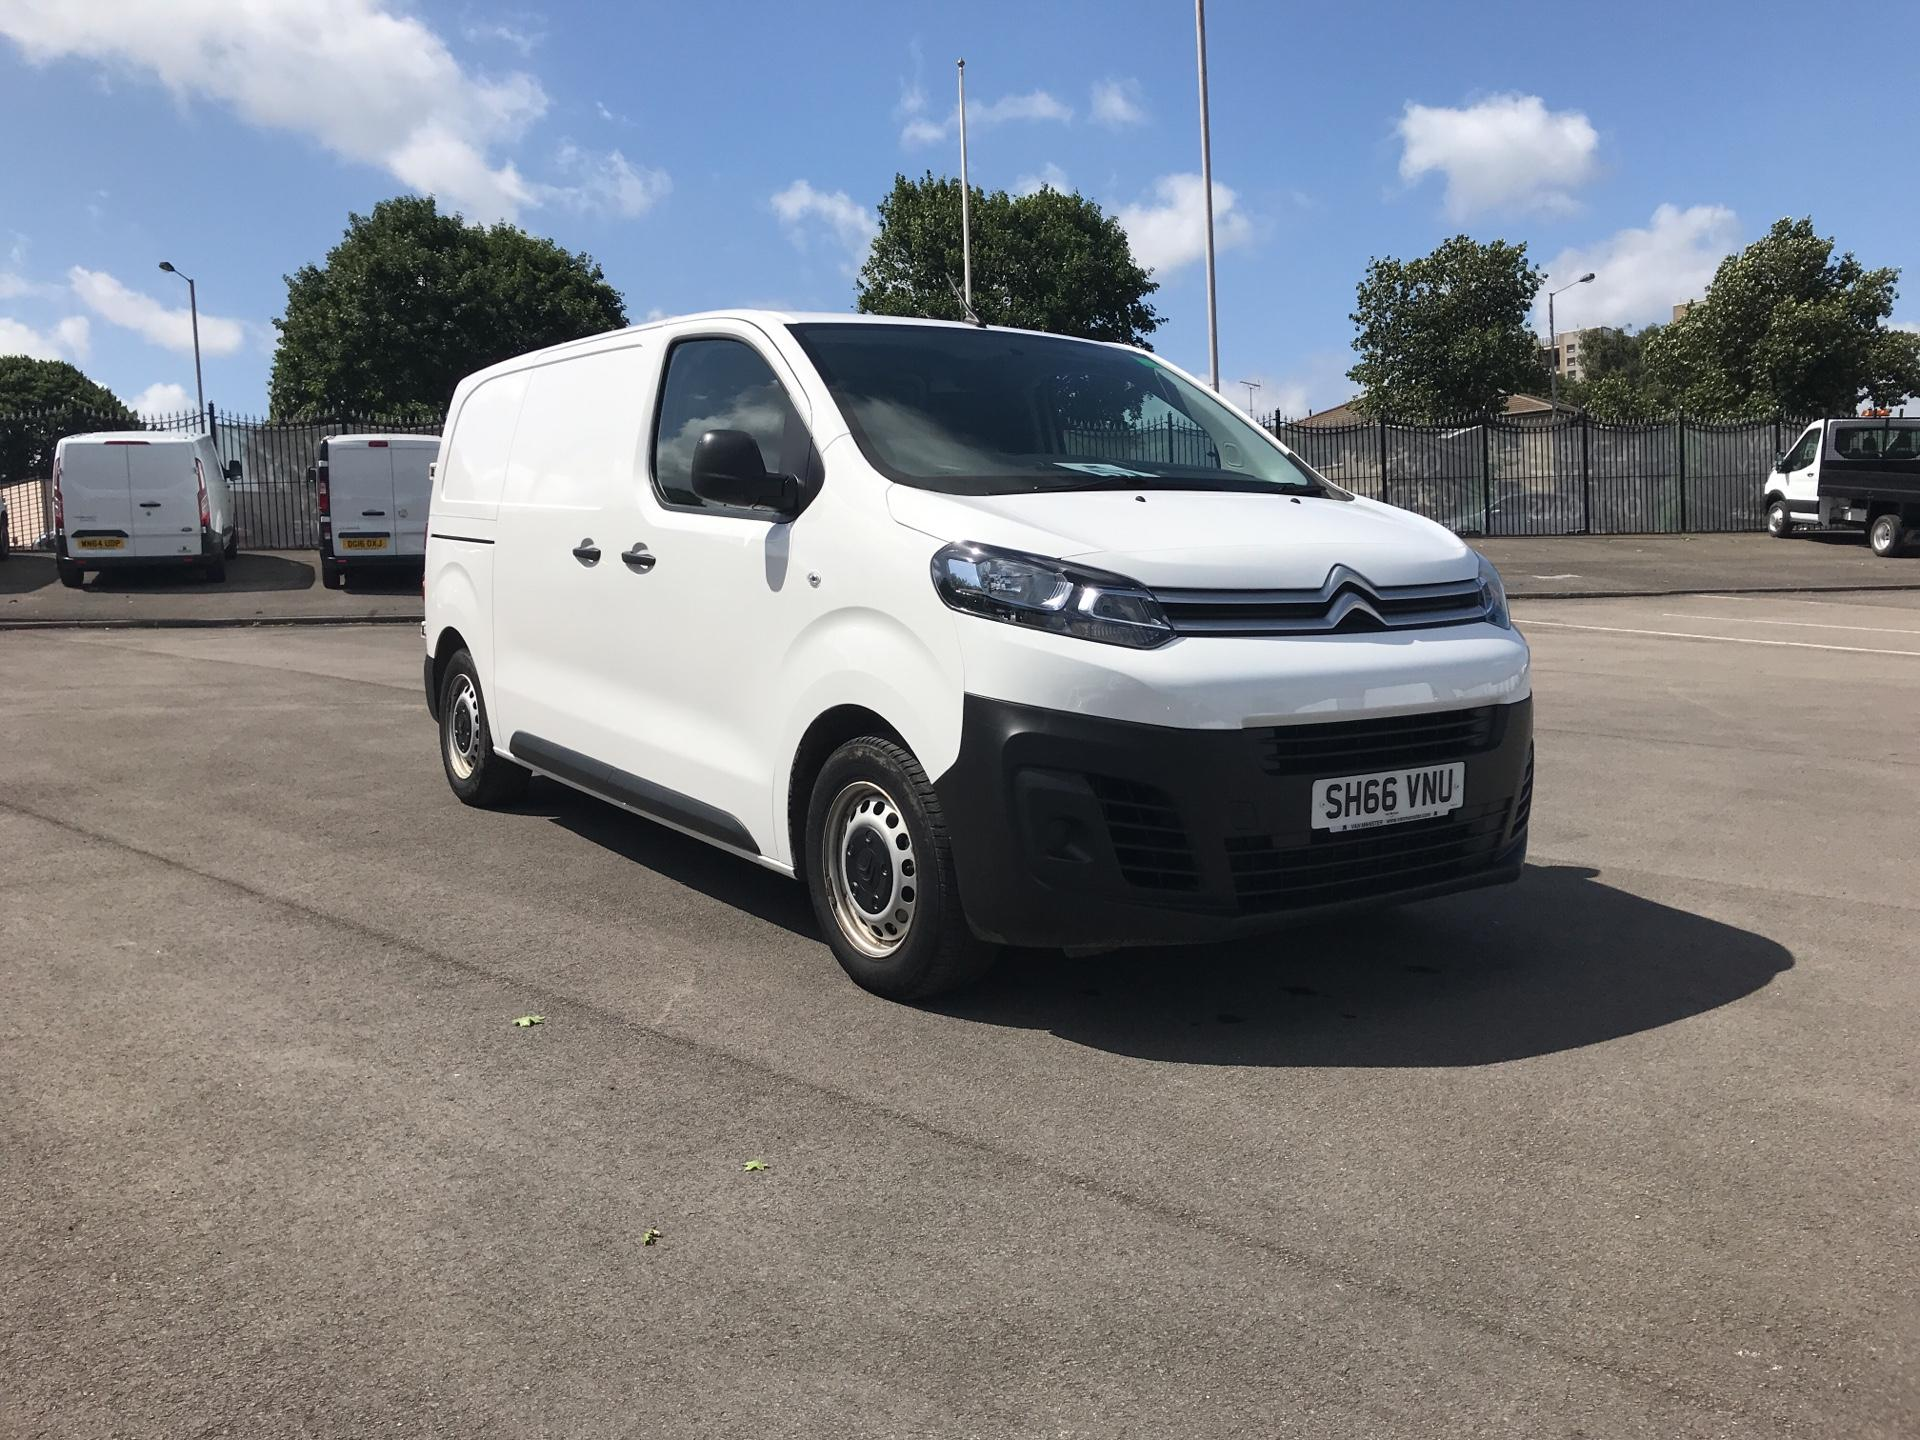 2016 Citroen Dispatch  M Diesel 1000  1.6 BlueHDI 95 Van X EURO 6 (SH66VNU)